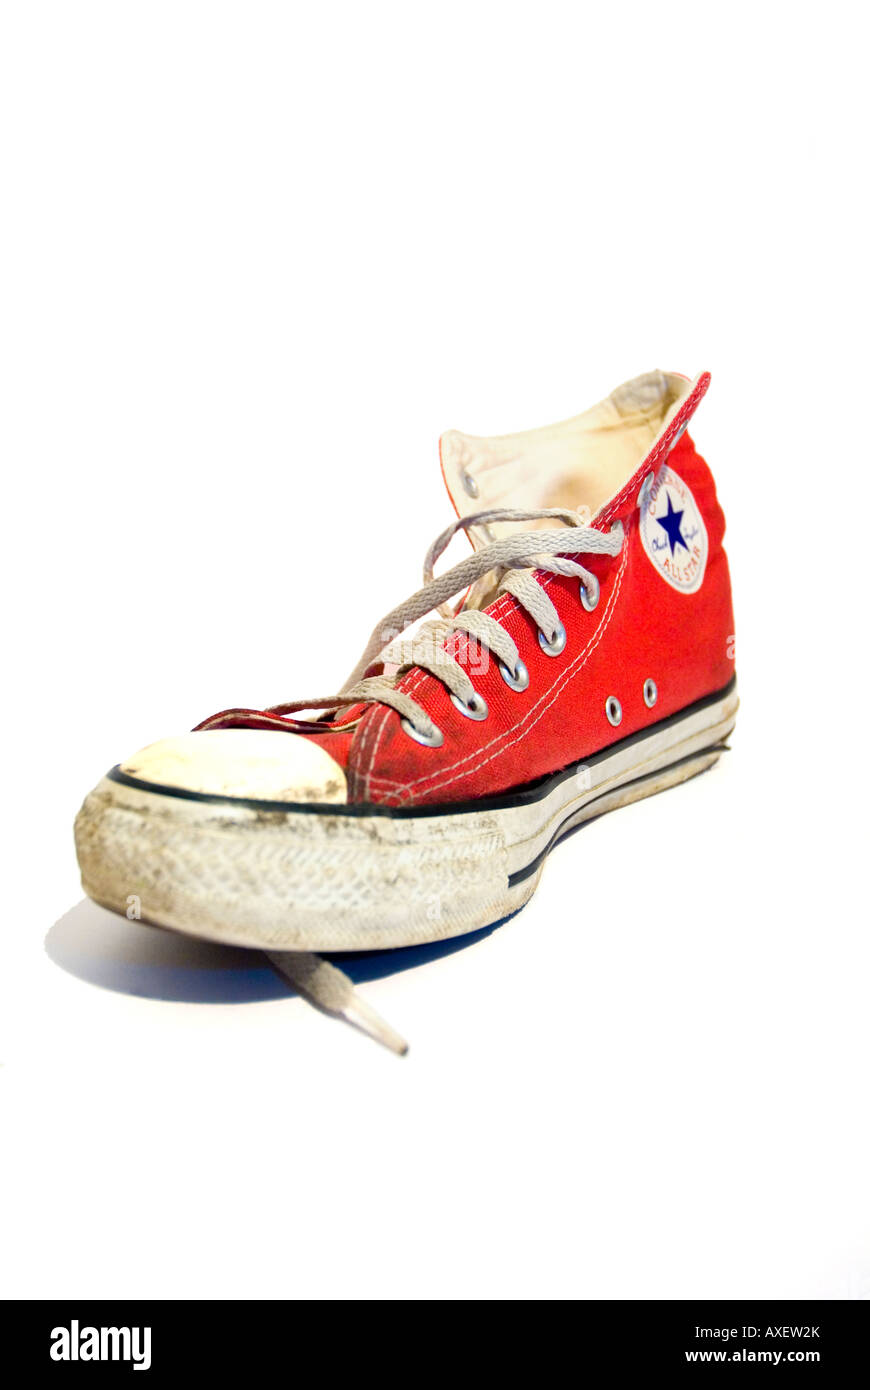 Converse All Star High Resolution Stock Photography and Images - Alamy